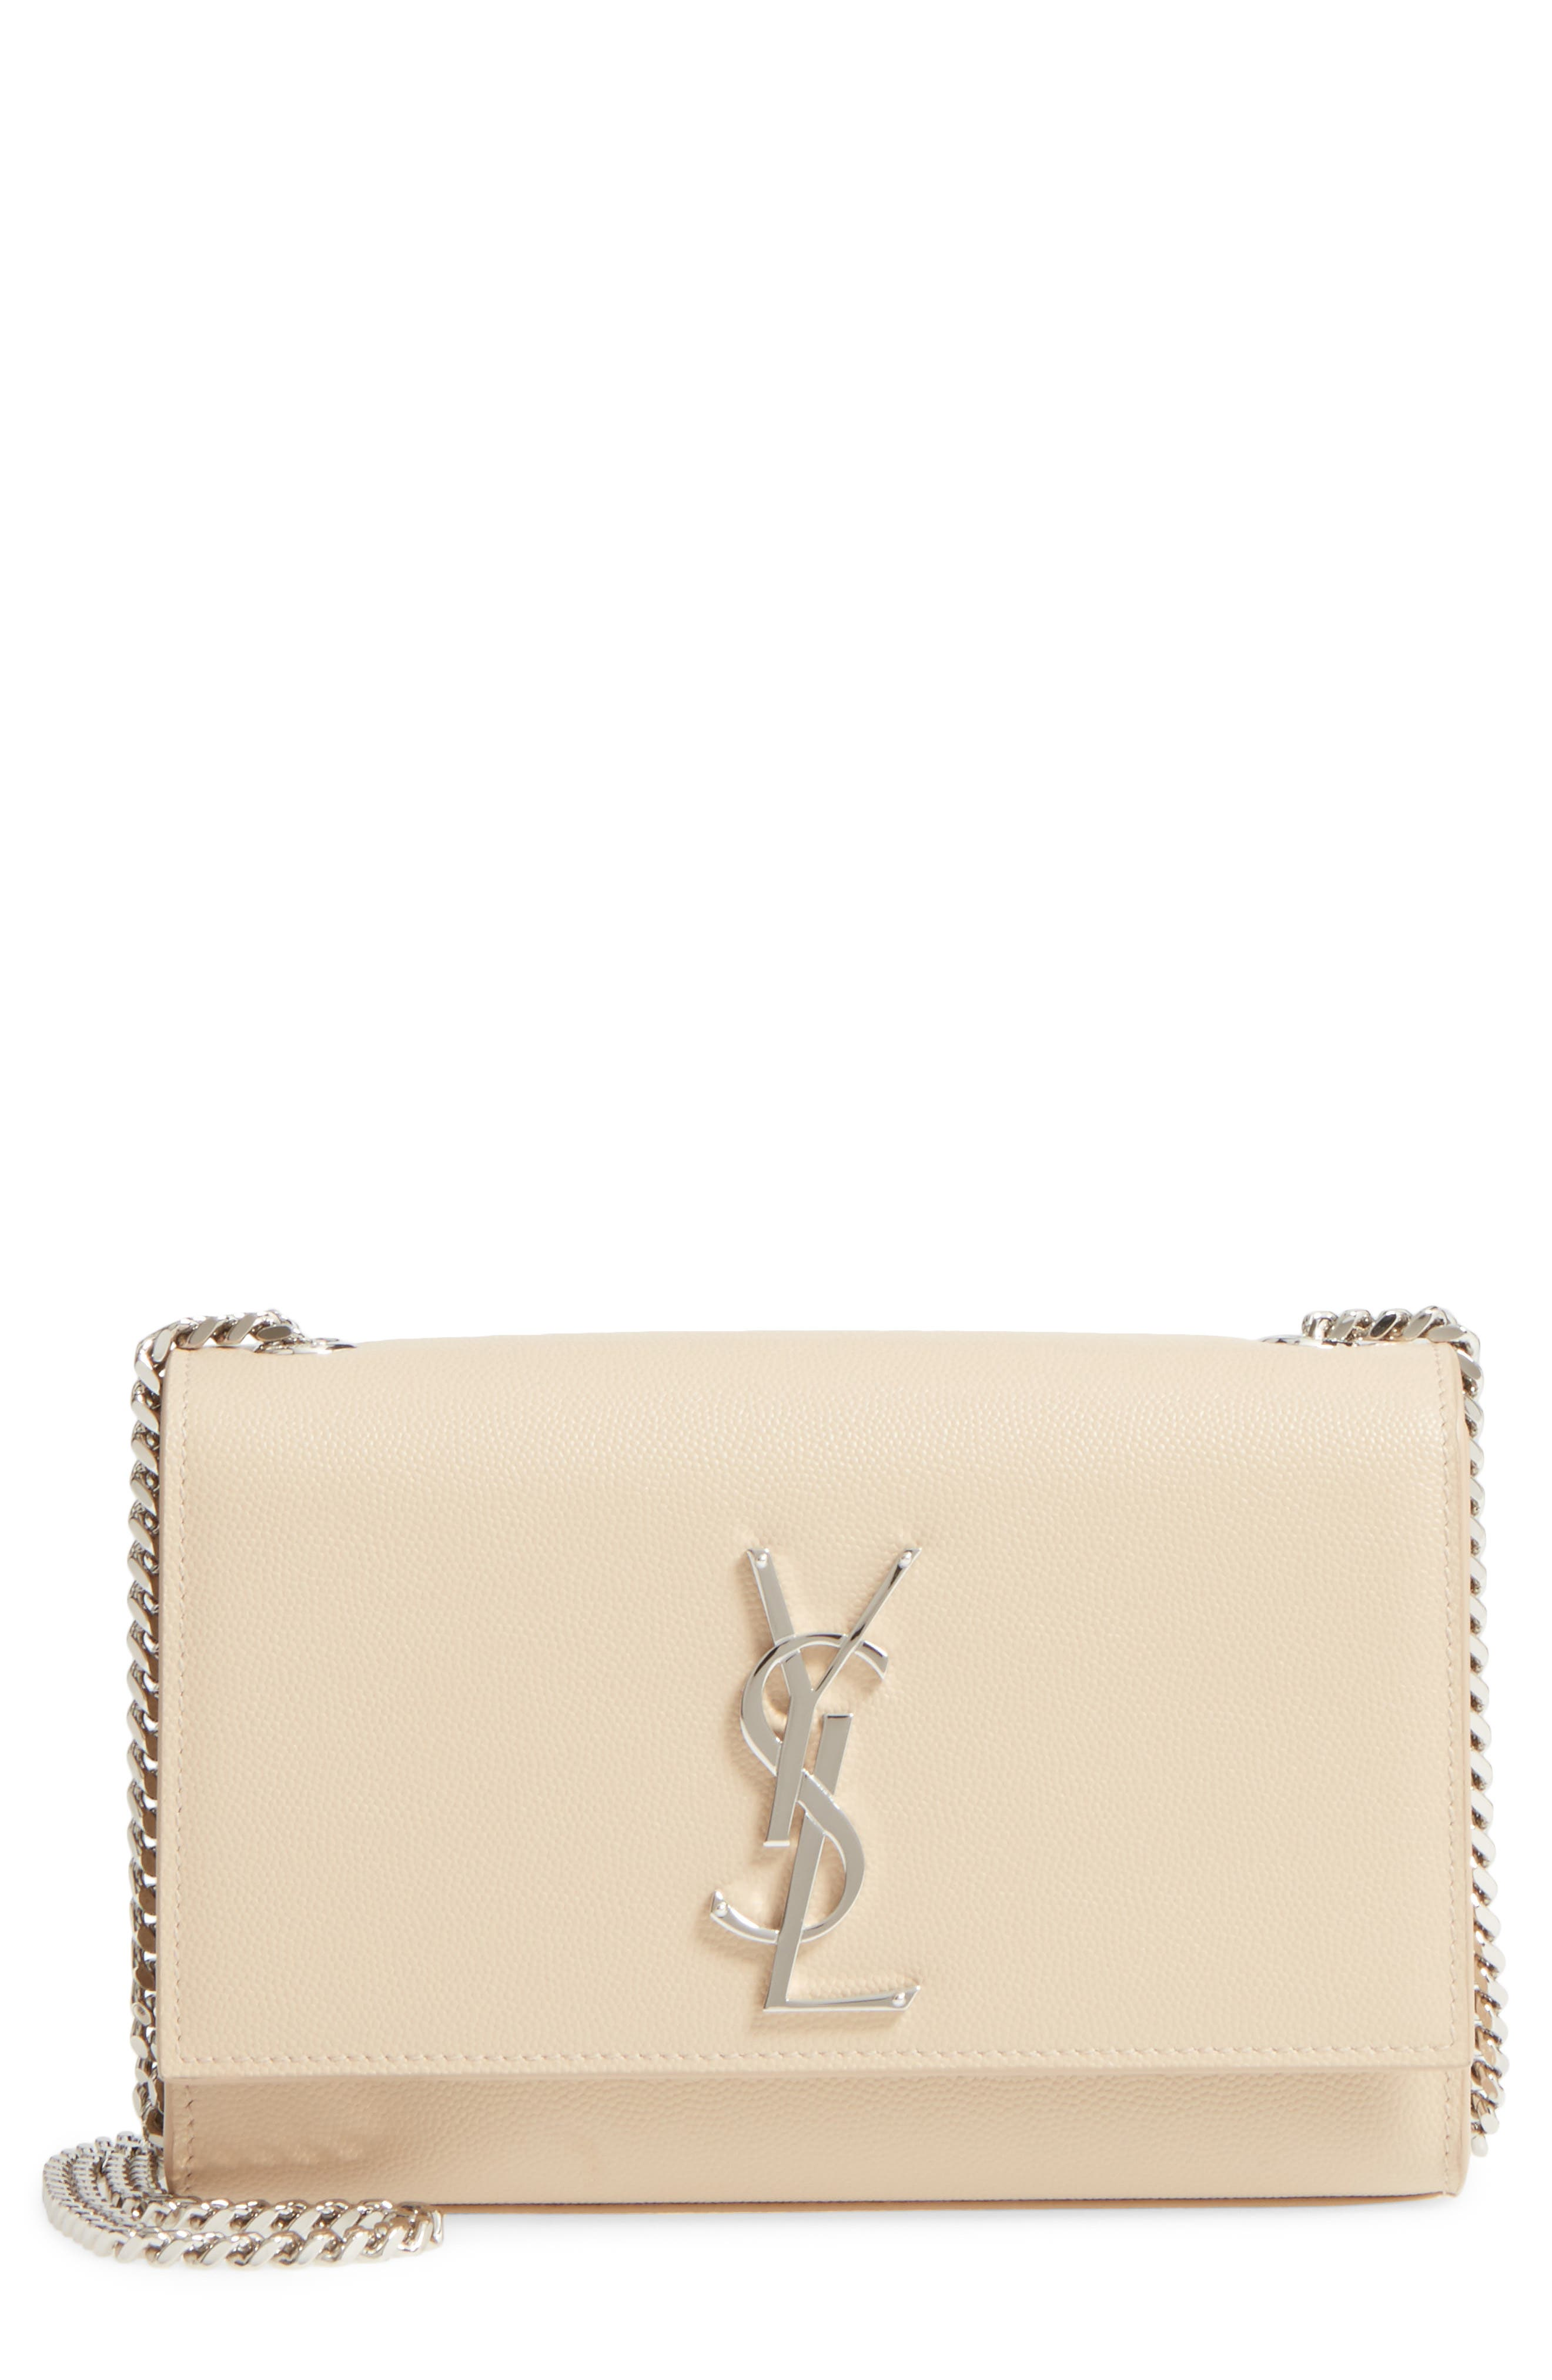 Alternate Image 1 Selected - Saint Laurent Small Kate Grained Leather Crossbody Bag